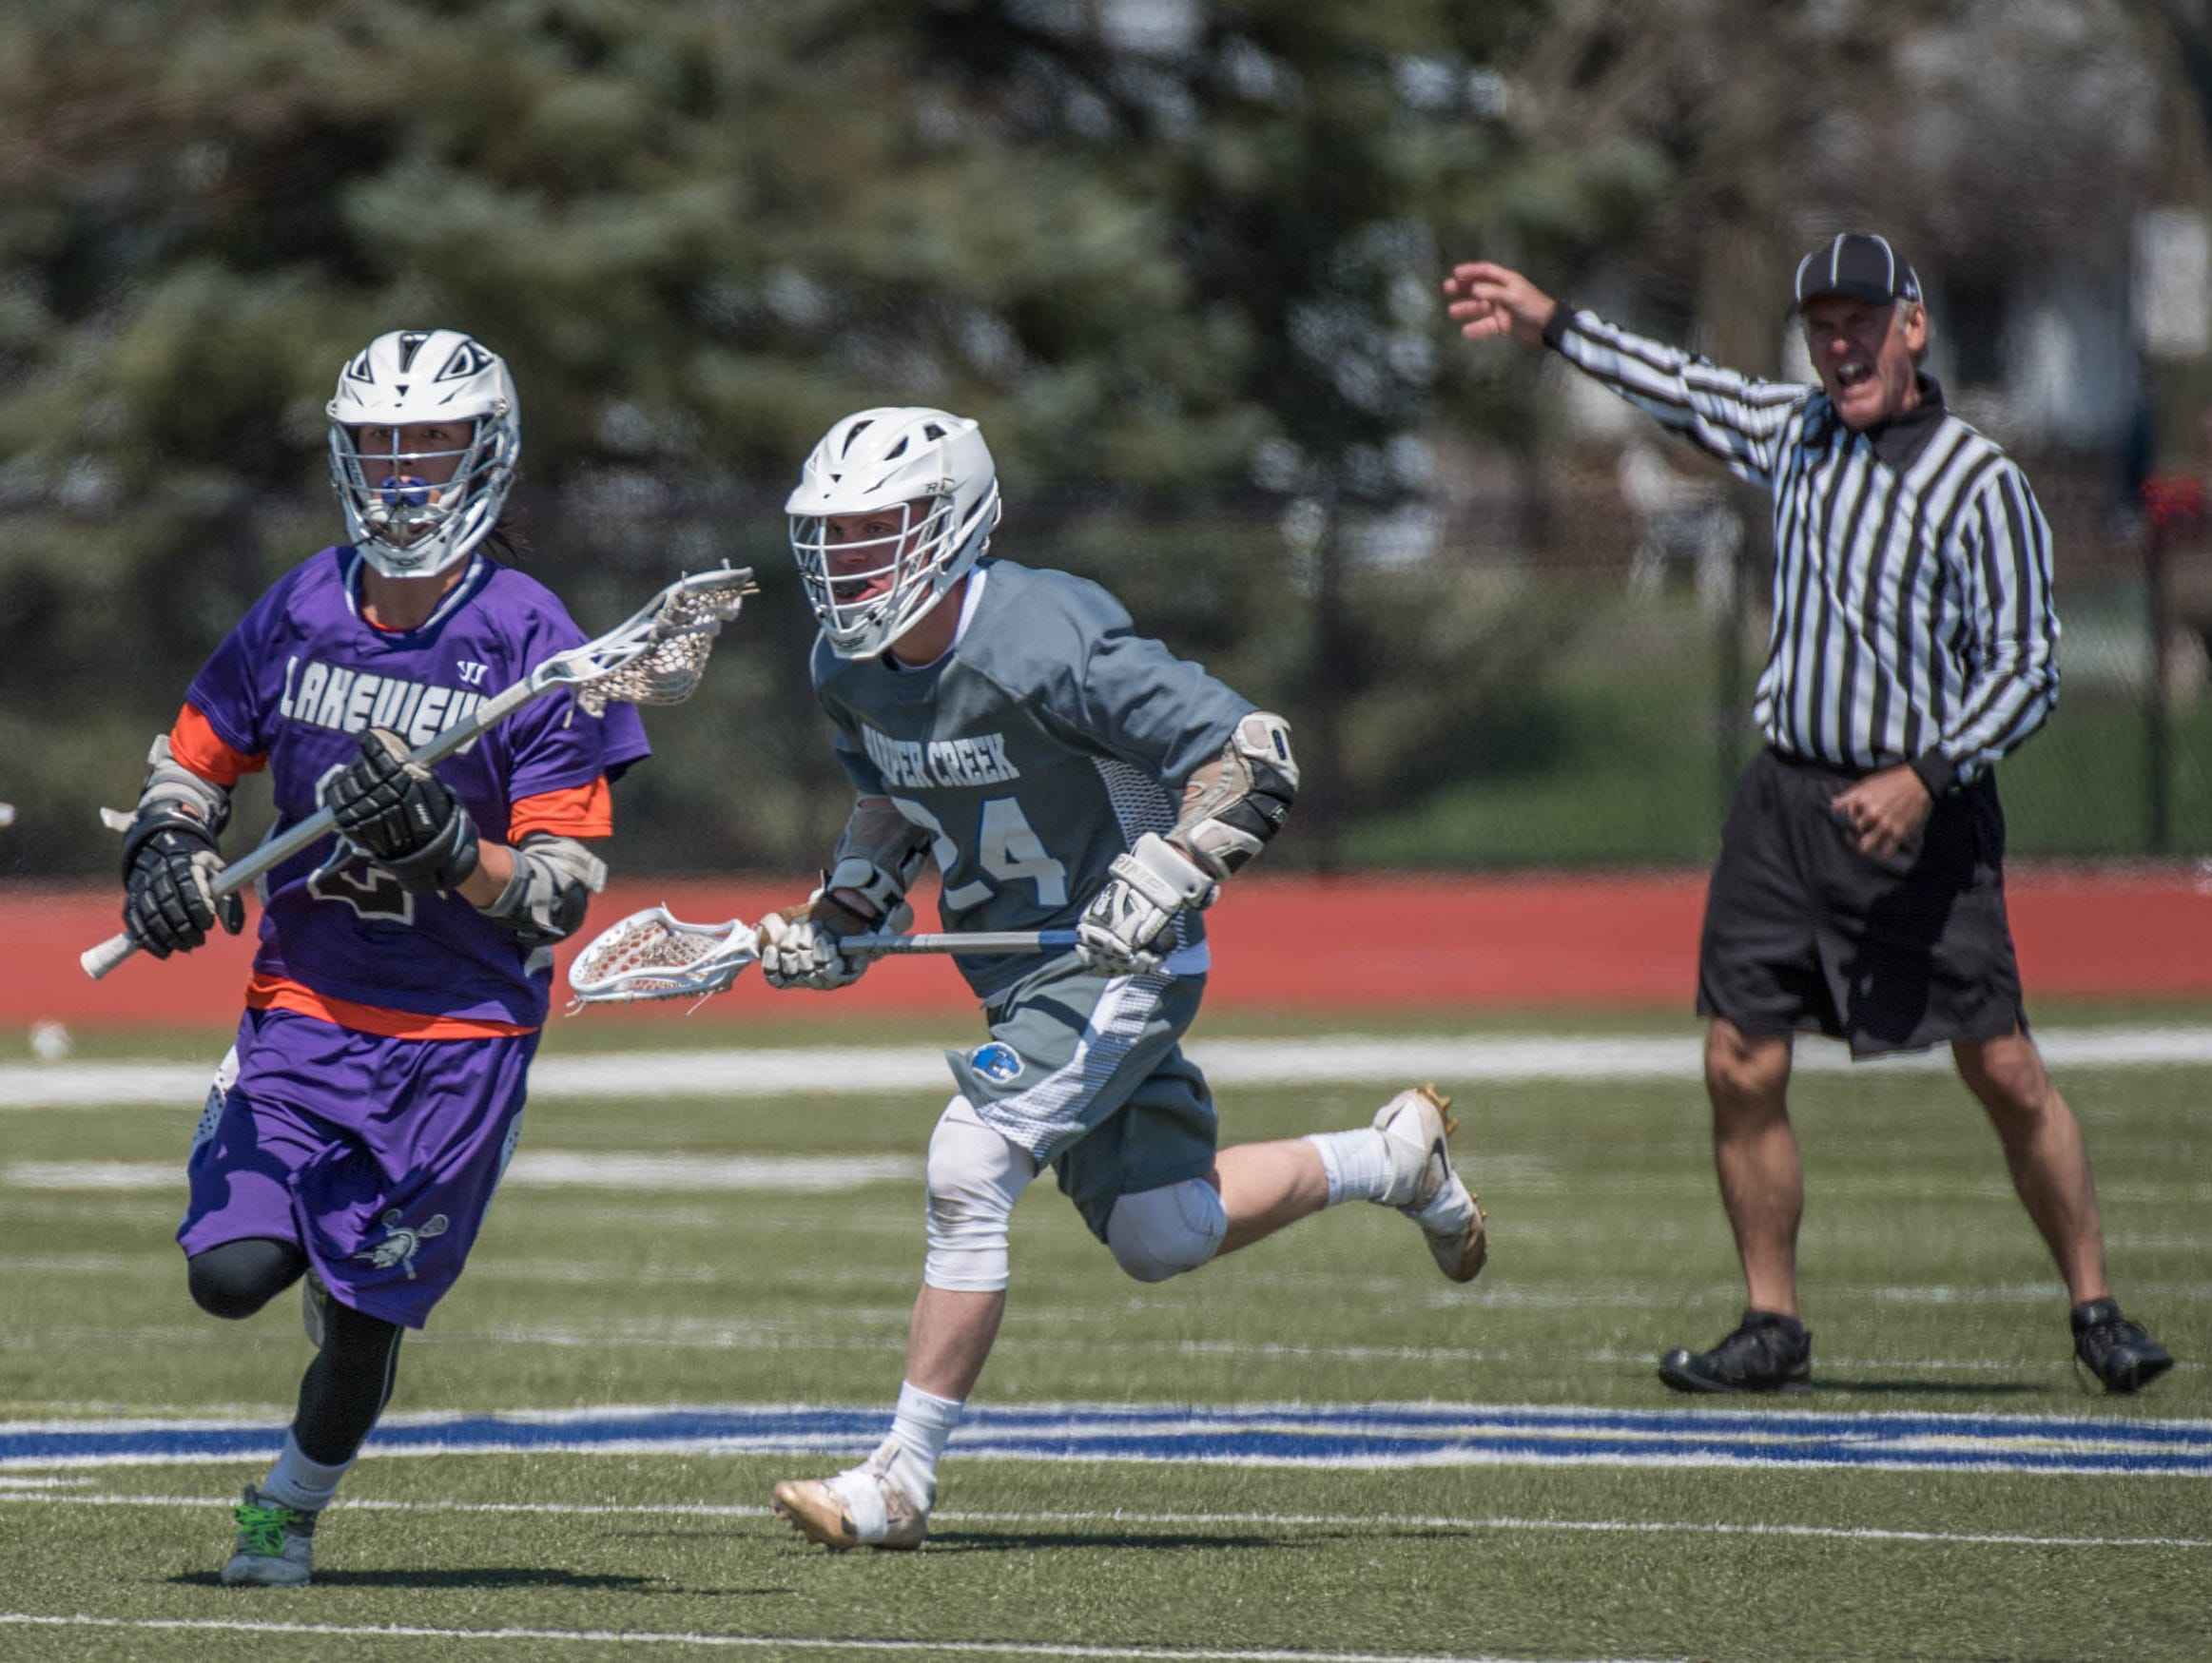 Lakeview's Jayson Butler (2) advances the ball against Harper Creek in the All City Lacrosse Tournament on Saturday.